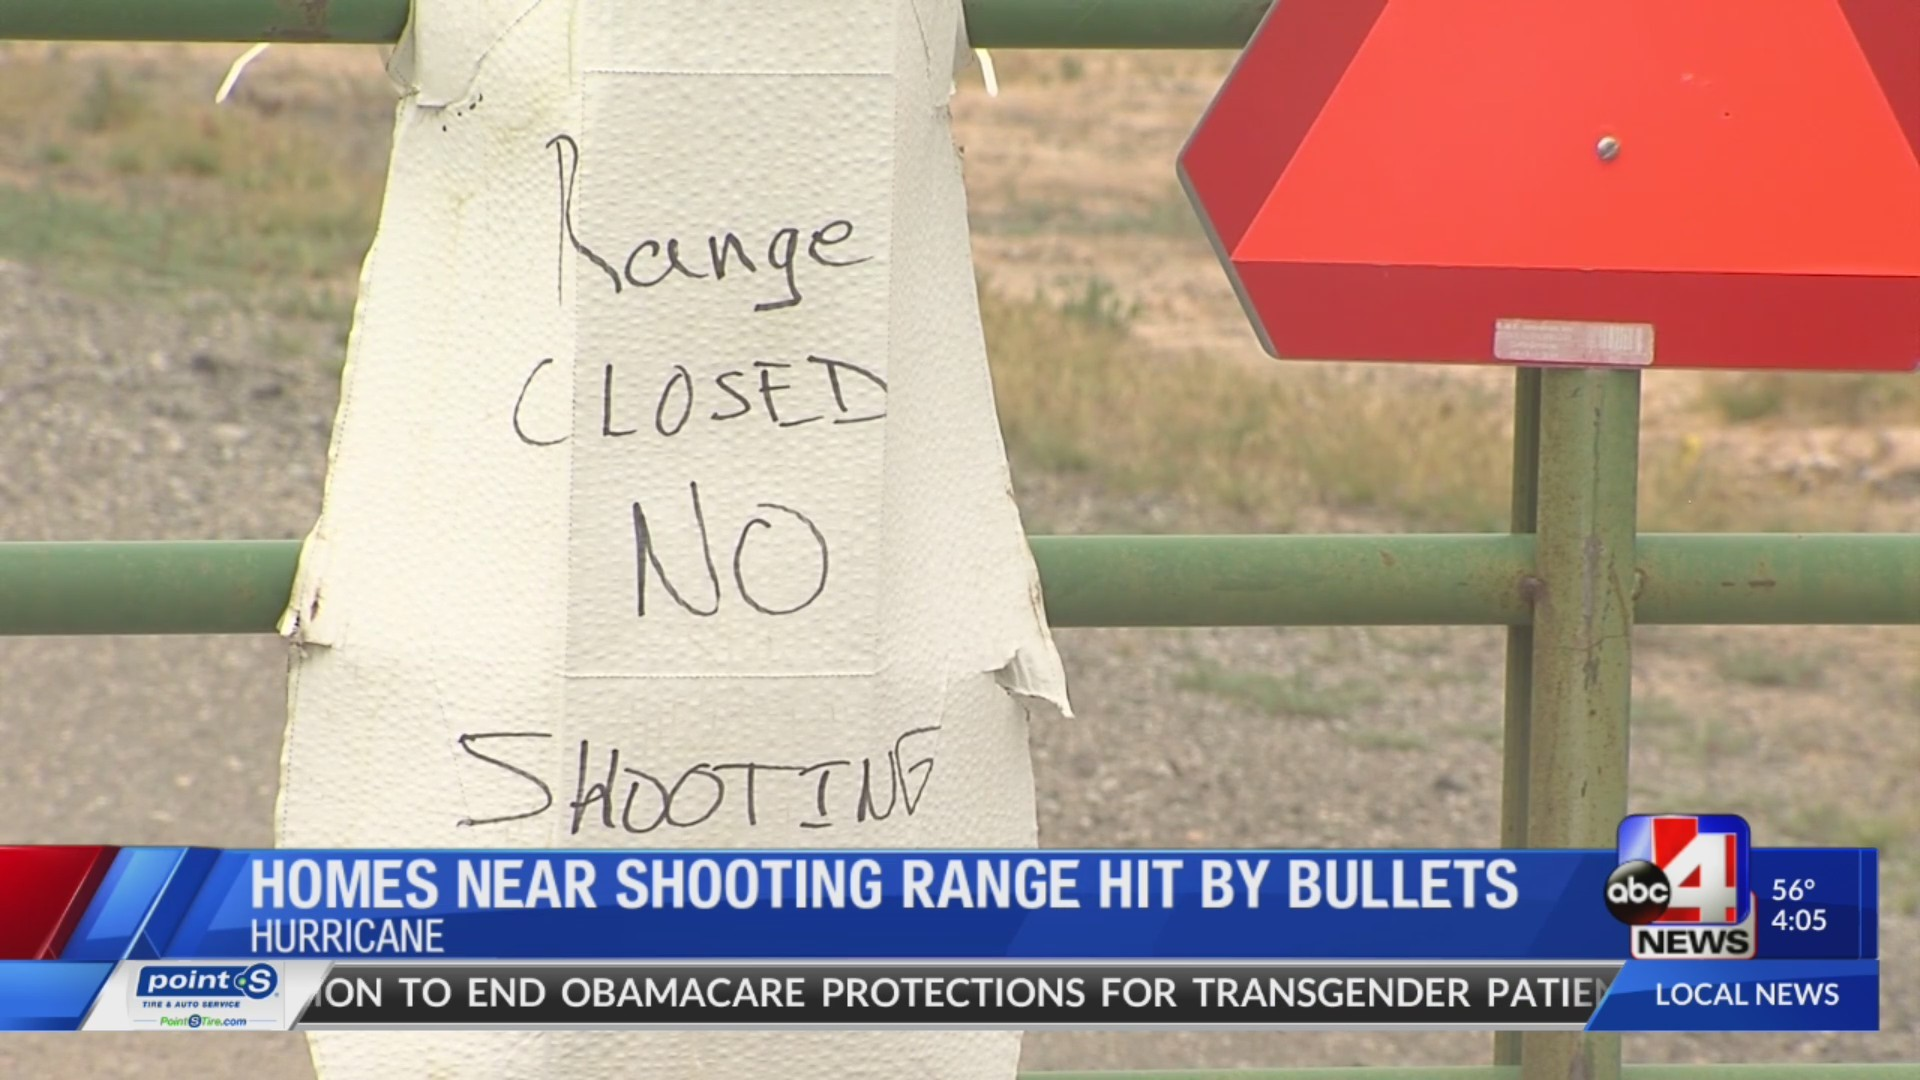 Southern Utah Practical Shooting Range partially closes after residents report ricocheting bullets